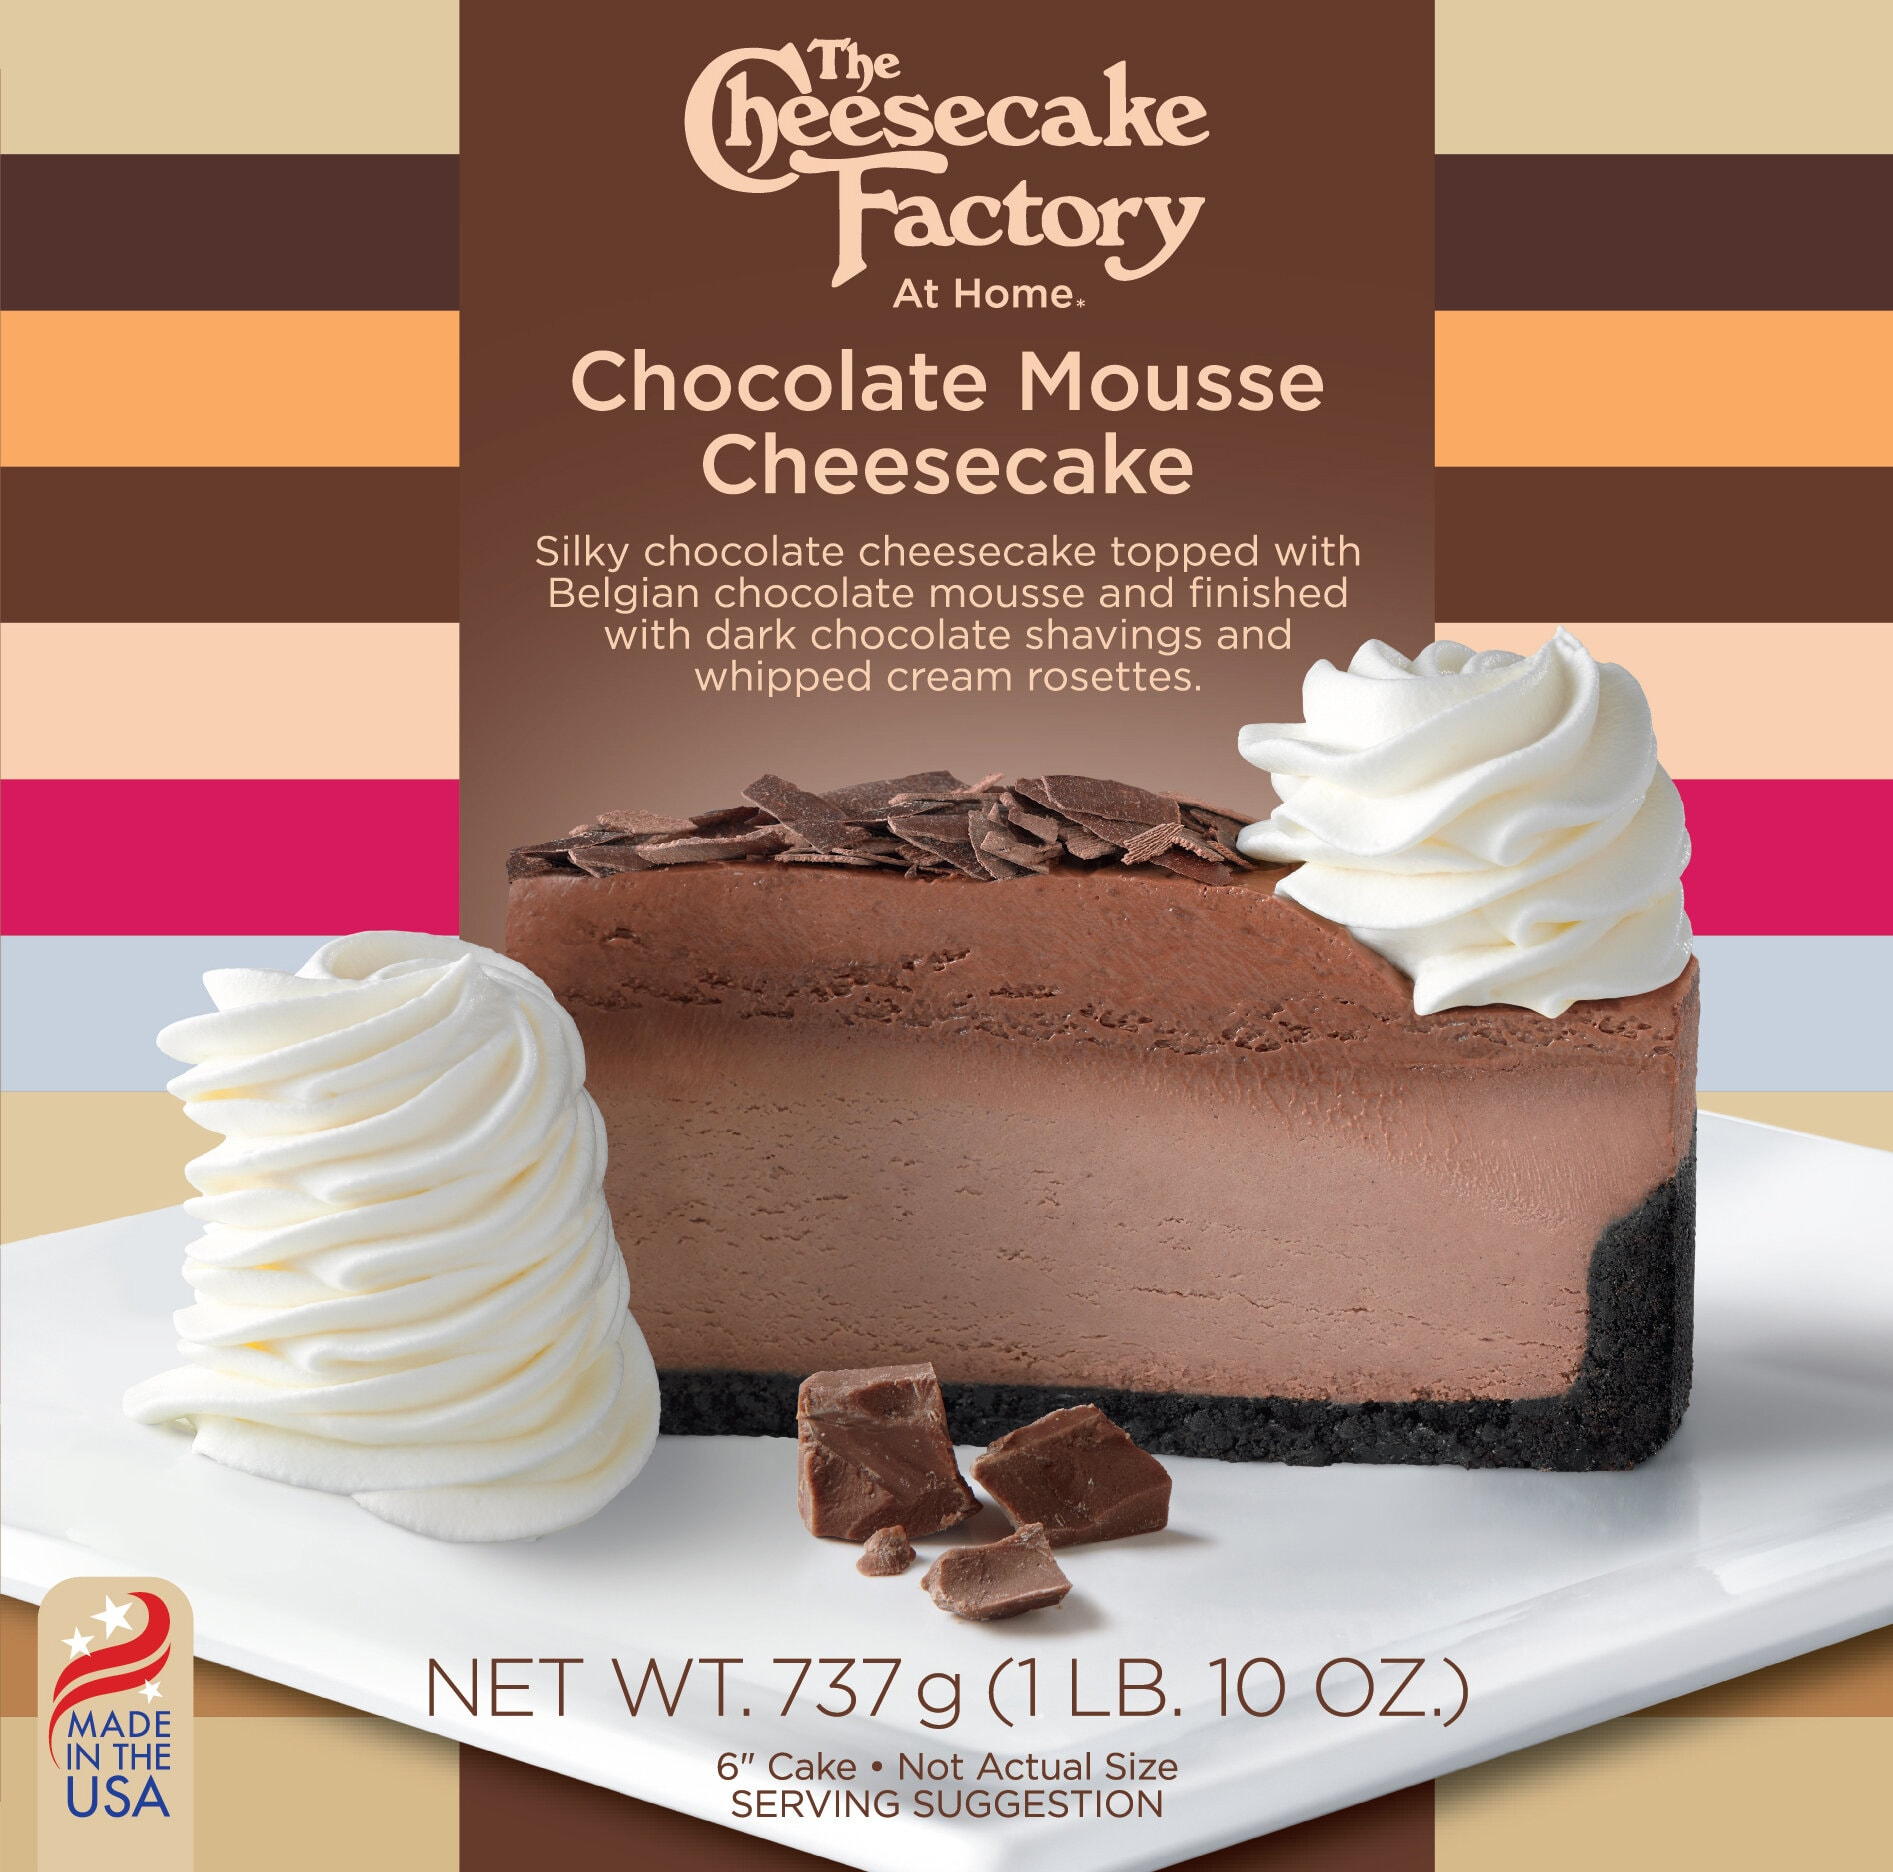 6 inch Chocolate Mousse Cheesecake